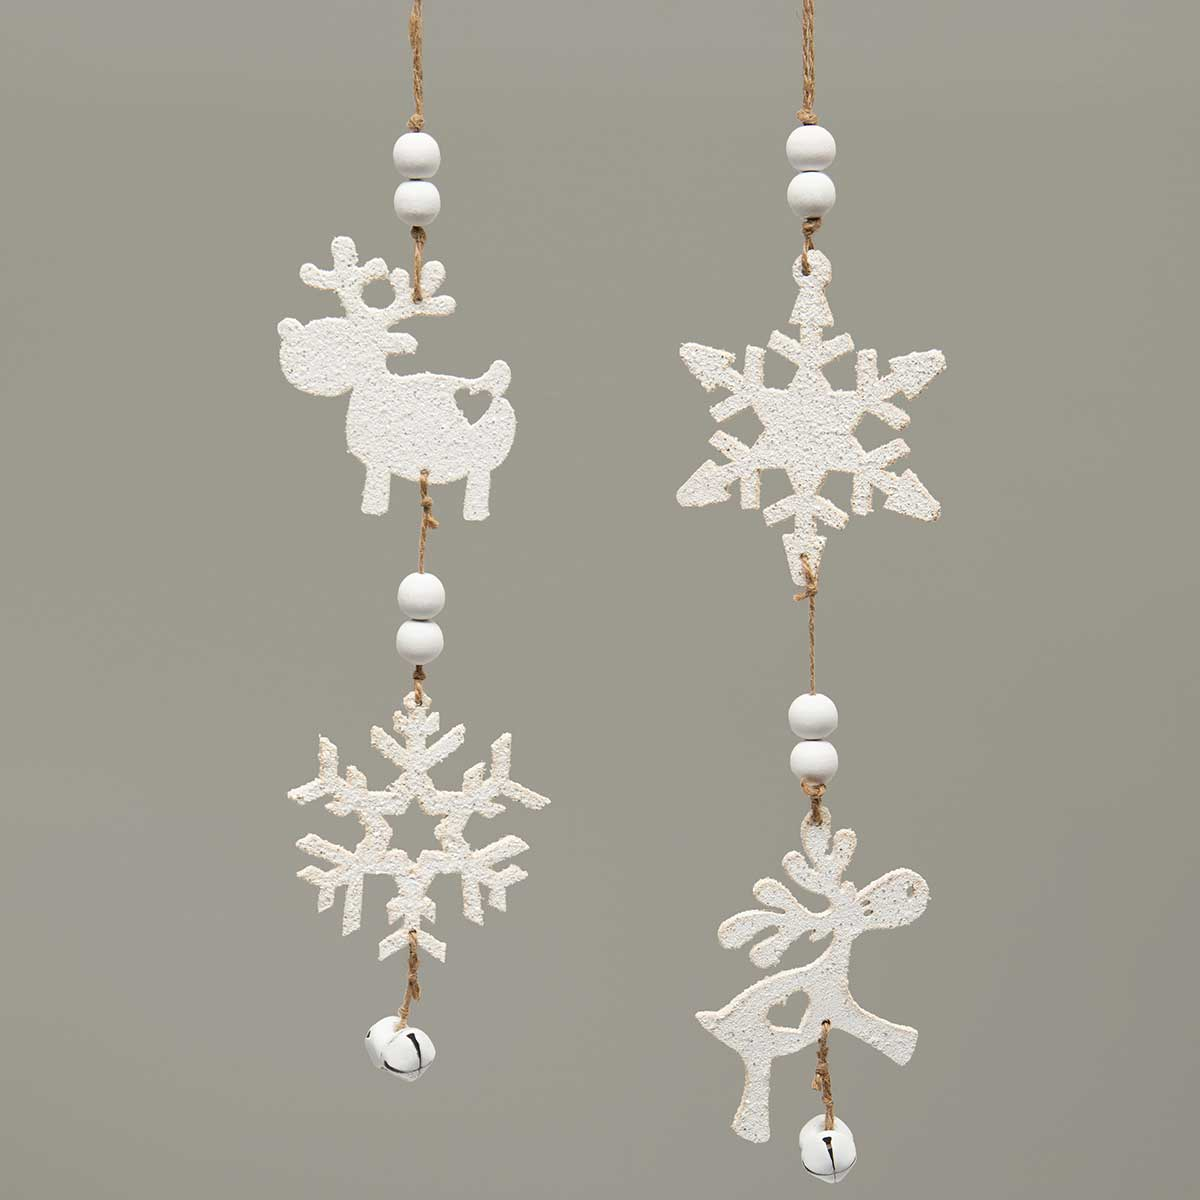 MOOSE AND SNOWFLAKE WOOD DANGLE ORNAMENT WITH GLITTER, BEADS